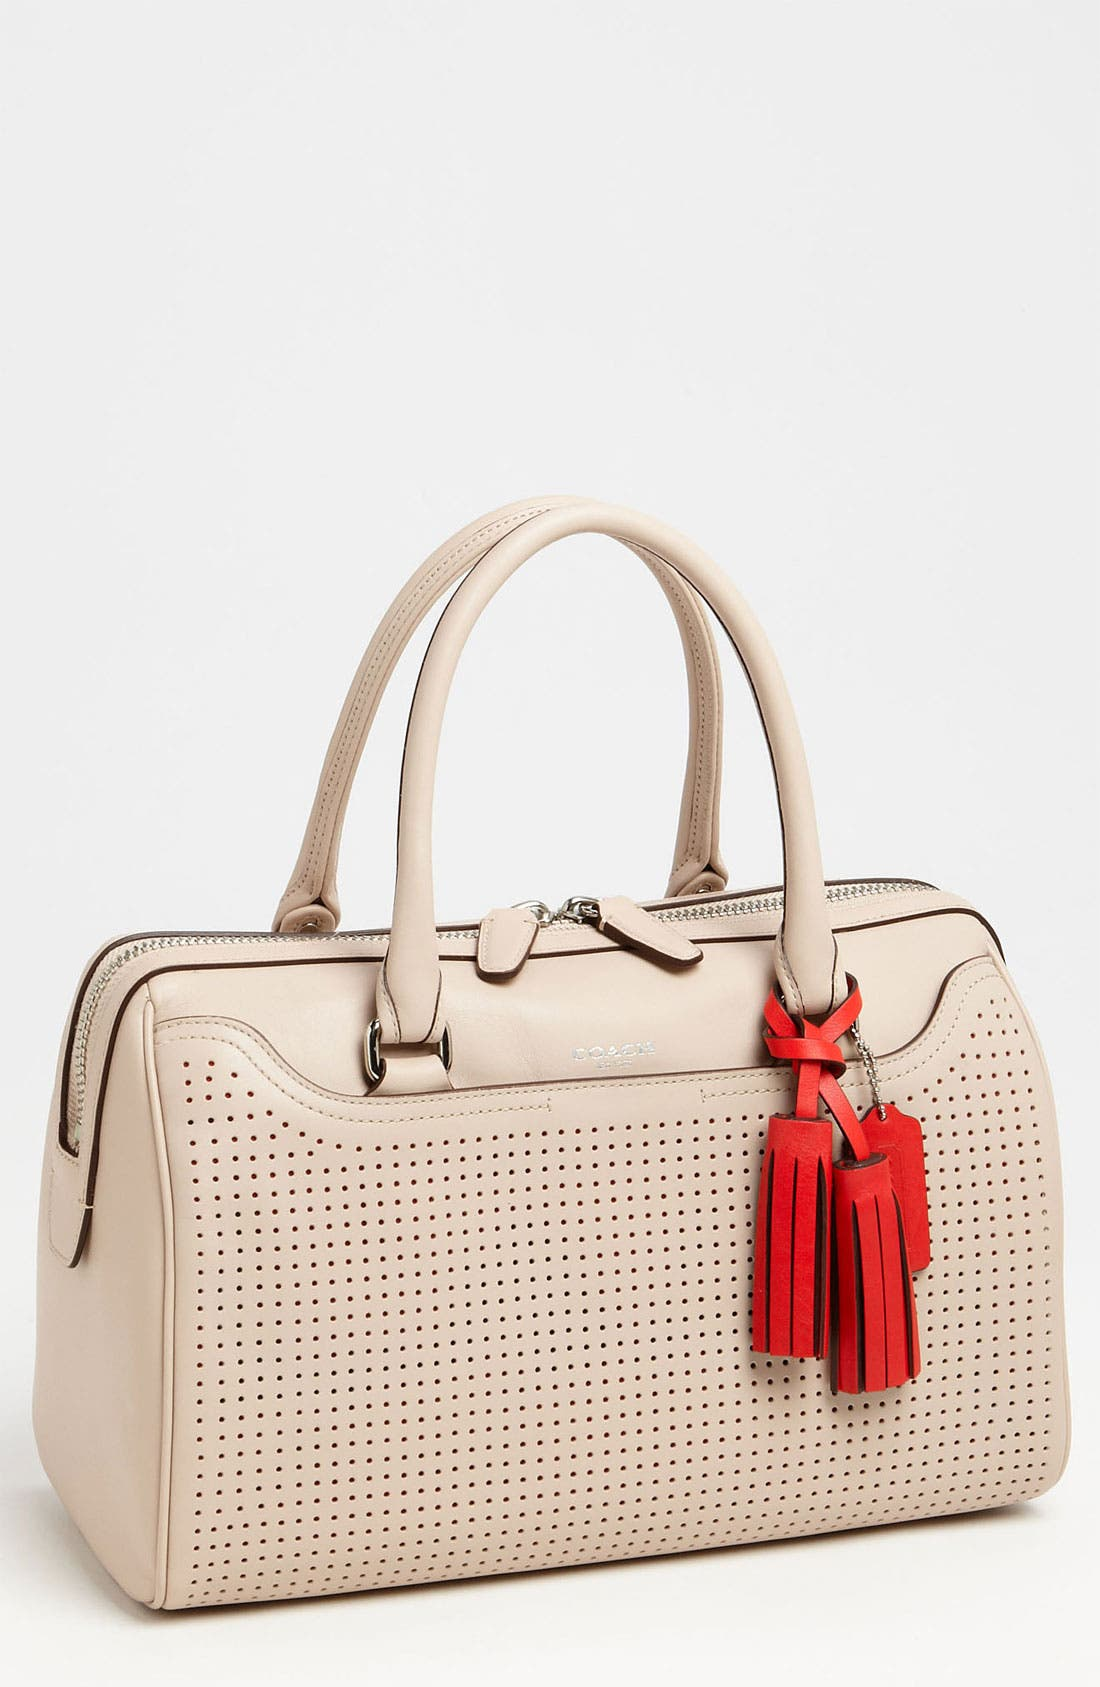 Alternate Image 1 Selected - COACH 'Legacy - Haley' Perforated Leather Satchel